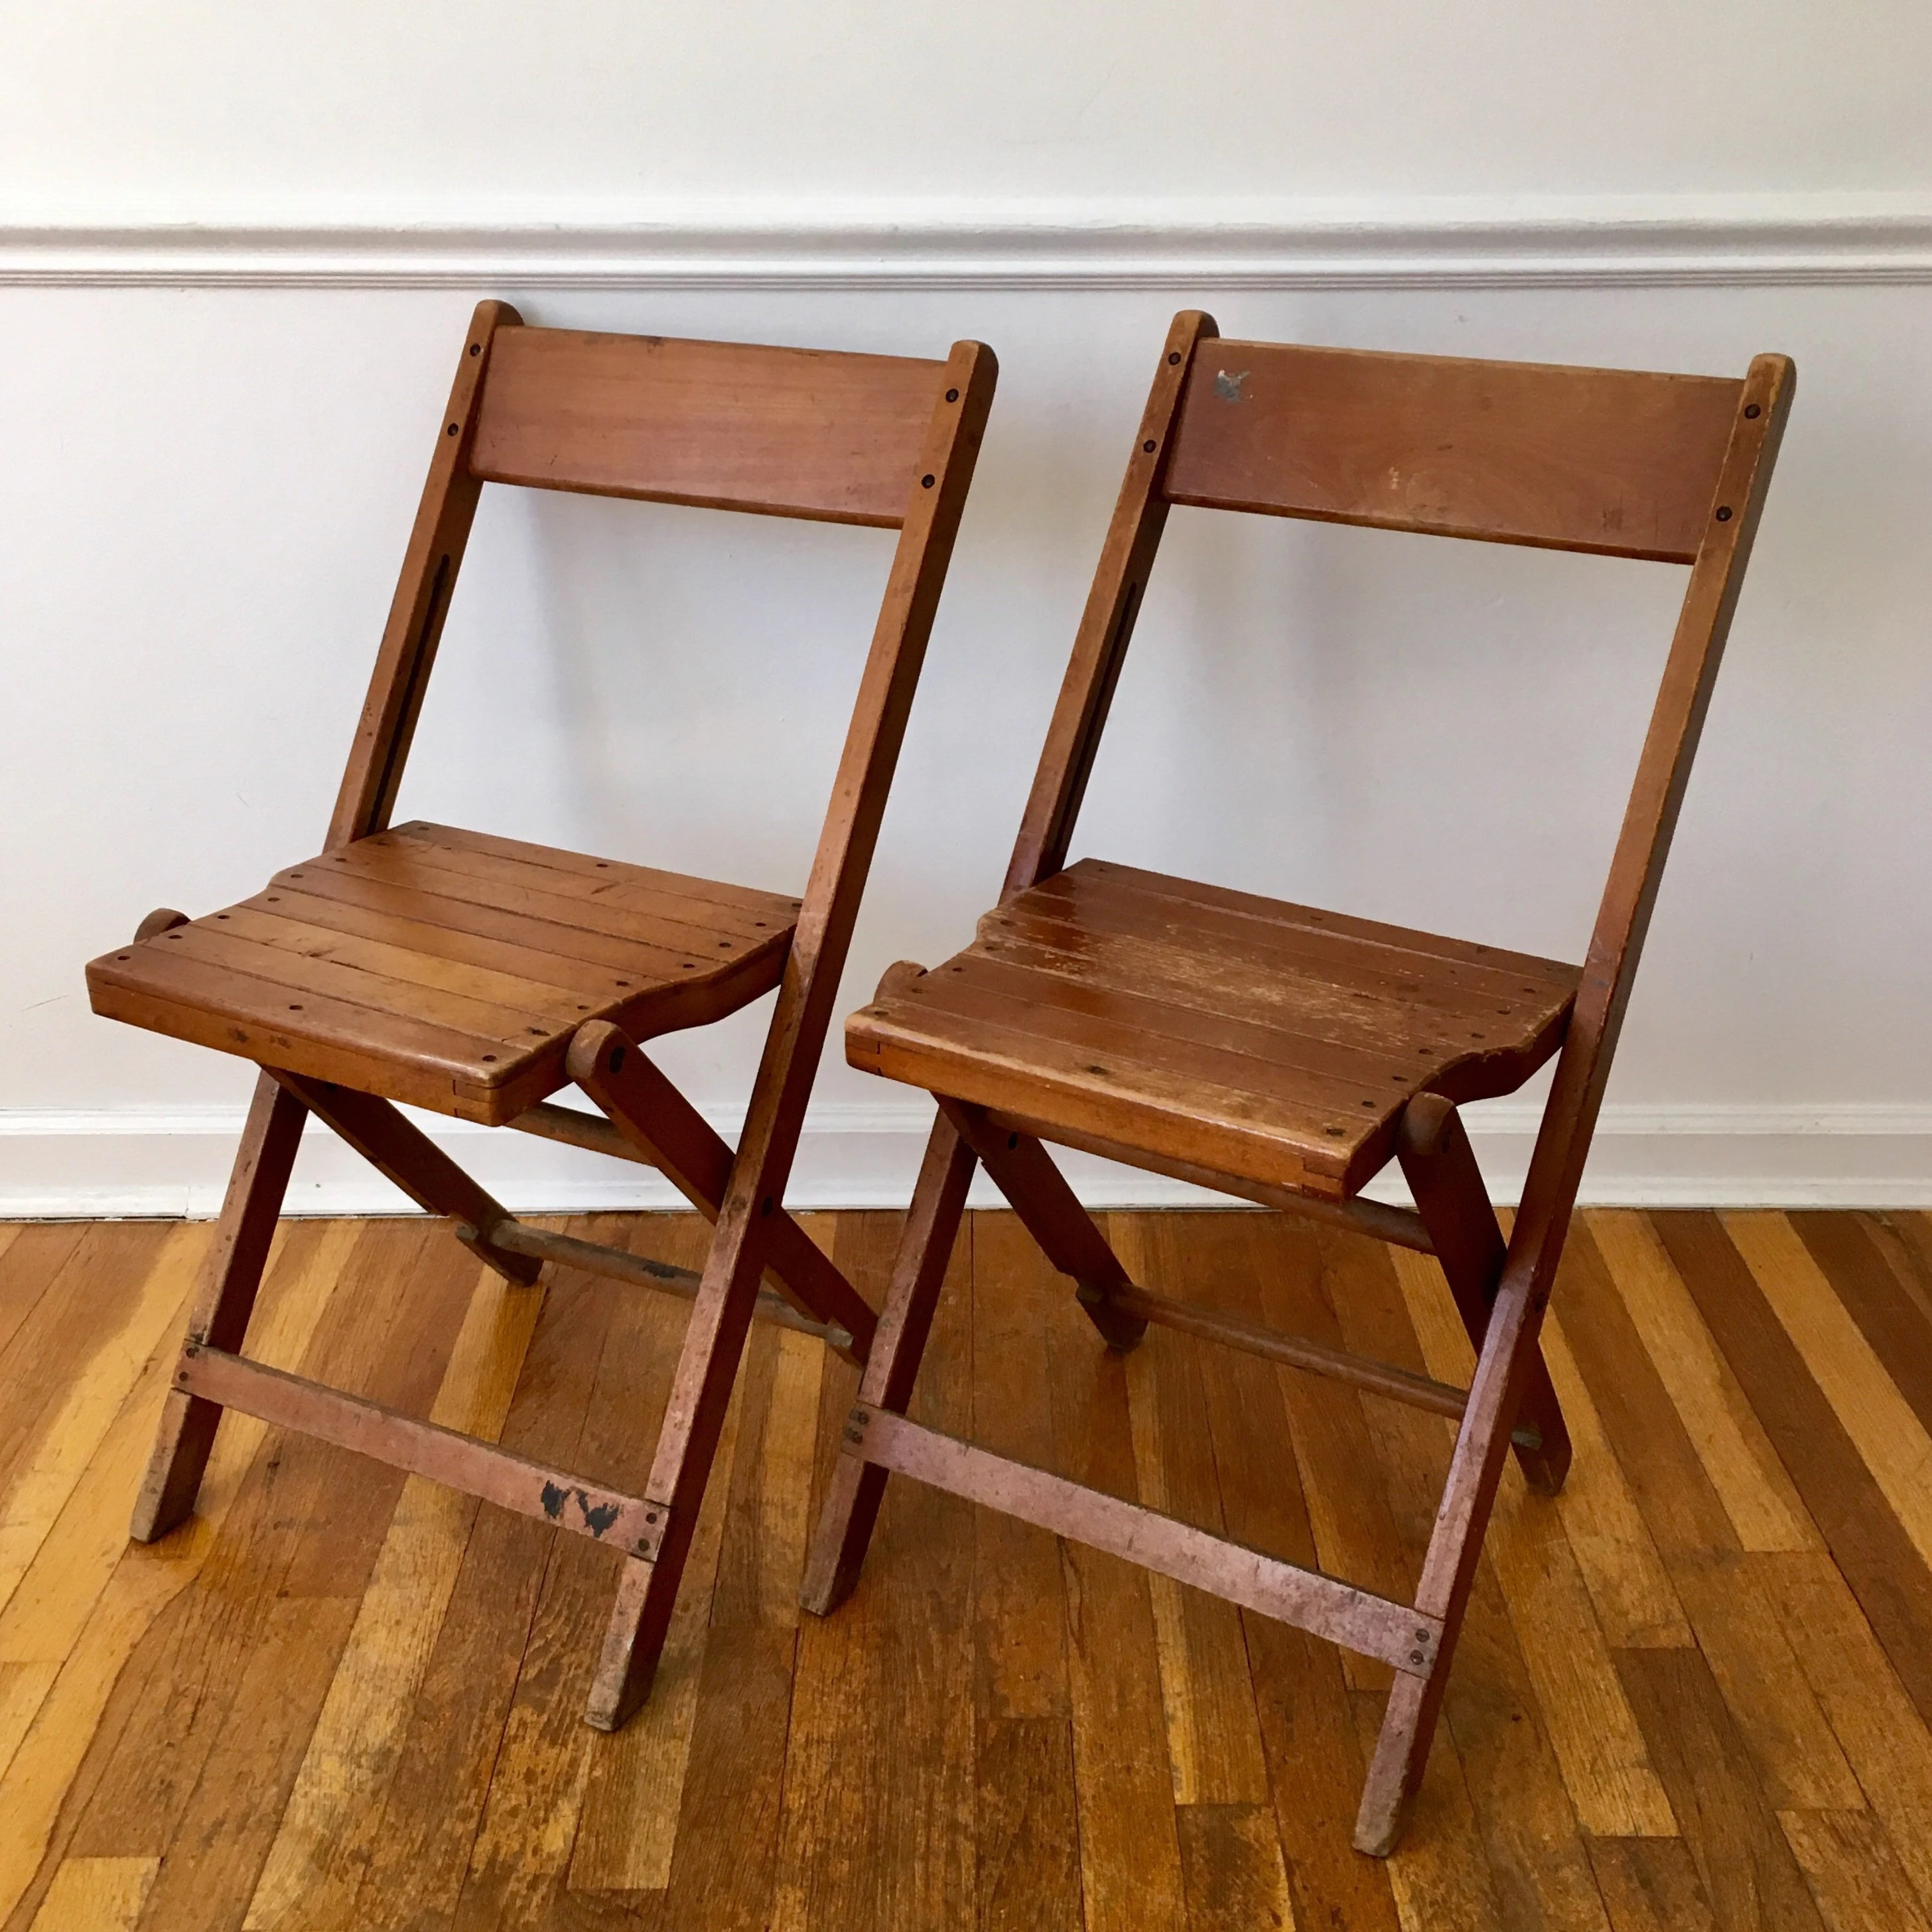 Folding Wooden Chairs Vintage Folding Wooden Chair Set